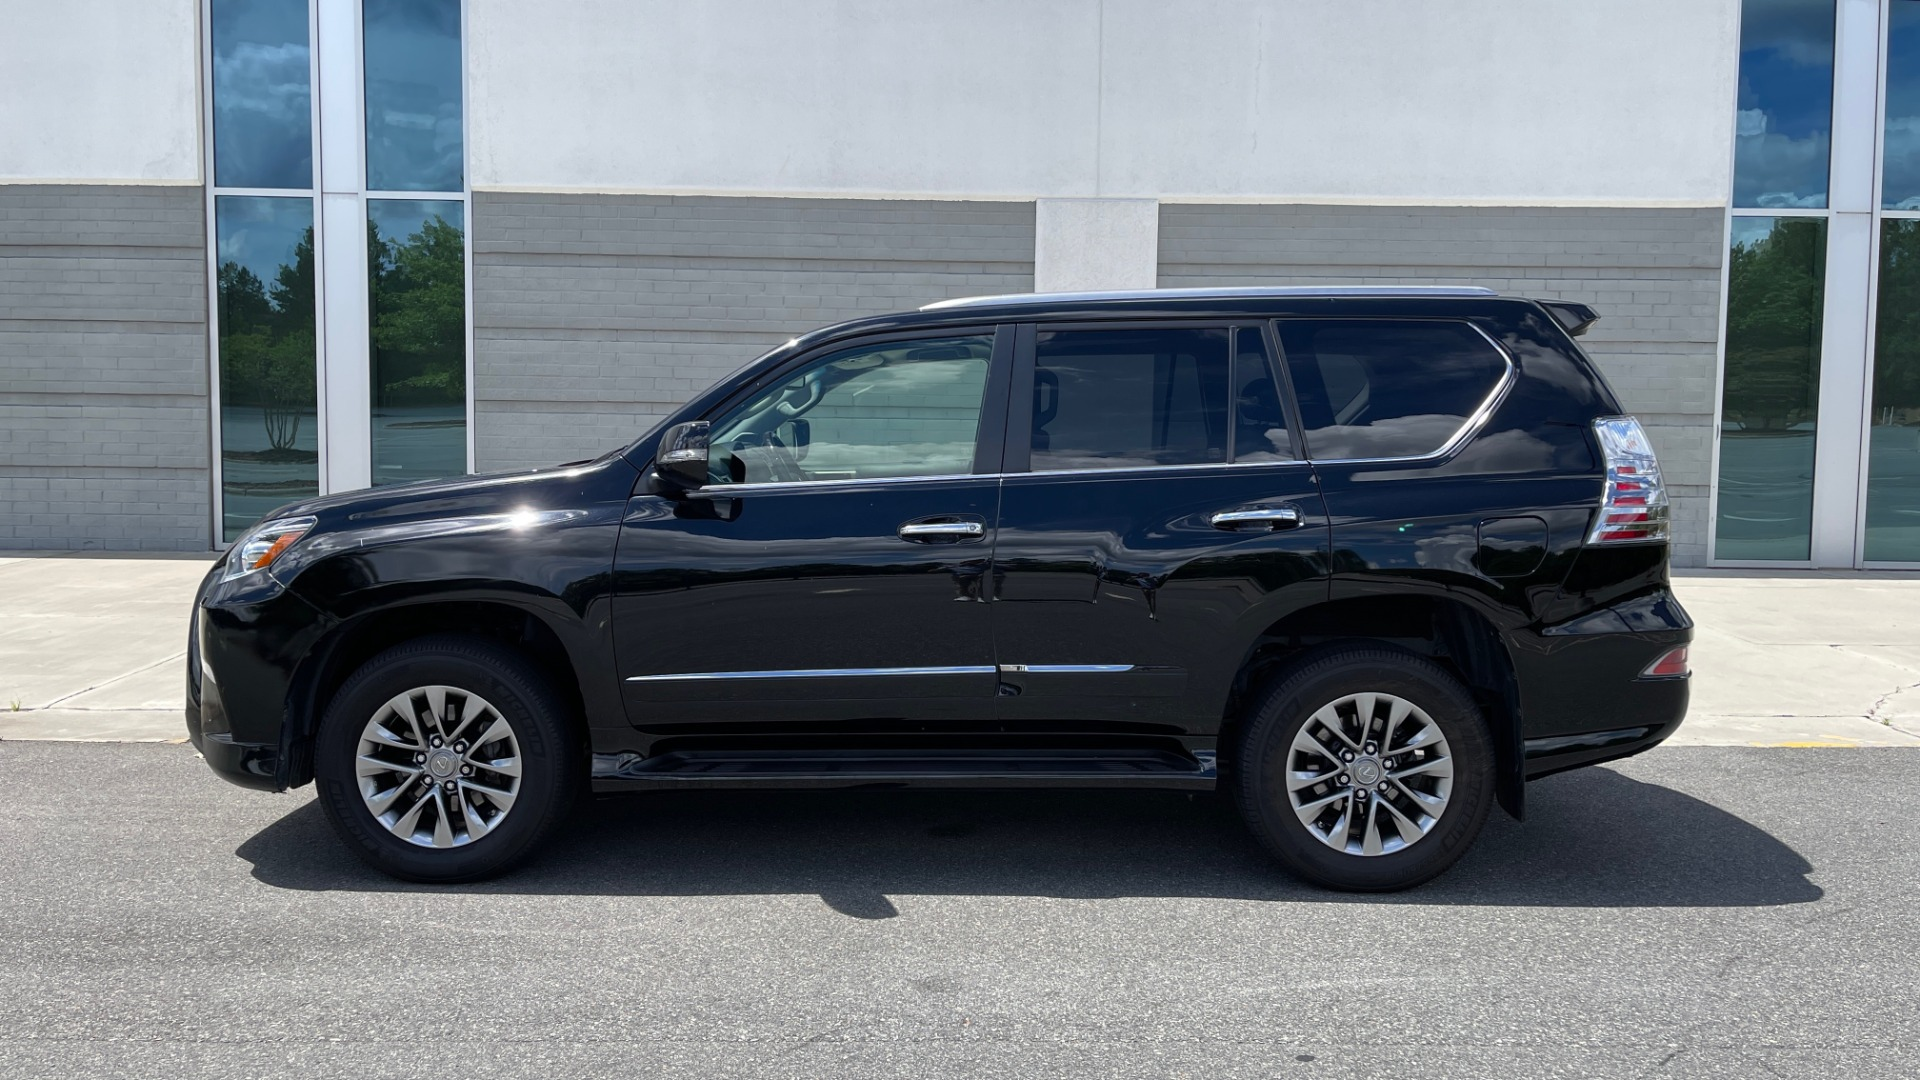 Used 2017 Lexus GX GX 460 LUXURY / AWD / NAV / SUNROOF / MARK LEV SND / REARVIEW for sale $37,995 at Formula Imports in Charlotte NC 28227 3